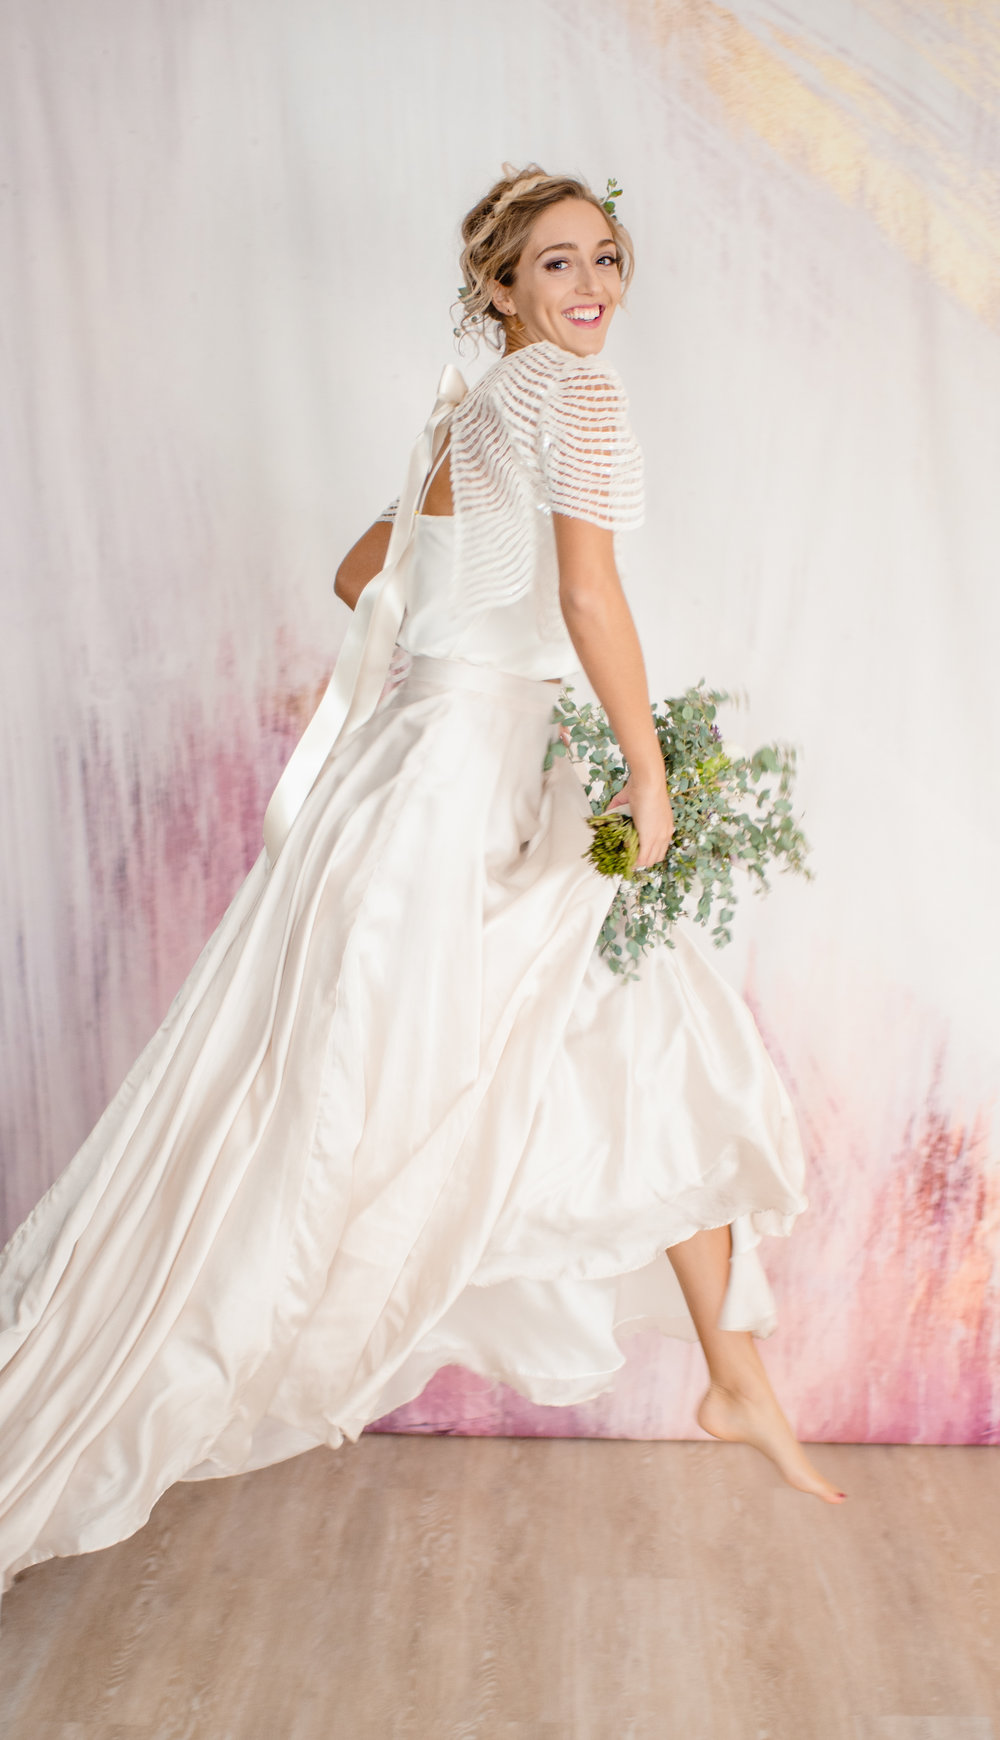 19_Amelia_Anne_Photography_RMB_Gown2018.jpg